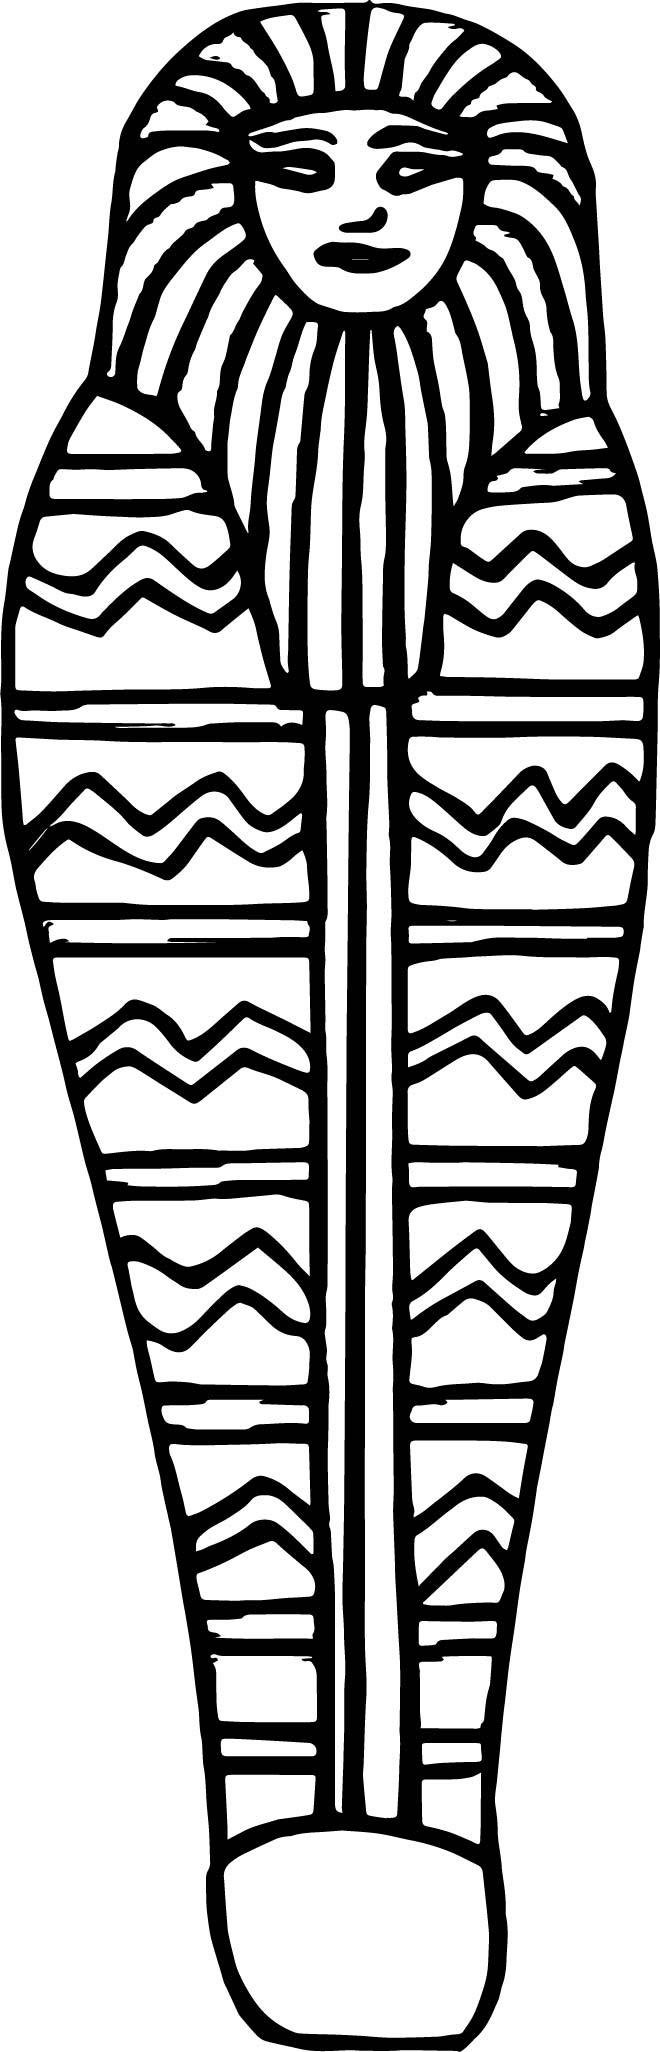 Ancient Egyptian Mummy Coffin Coloring Page